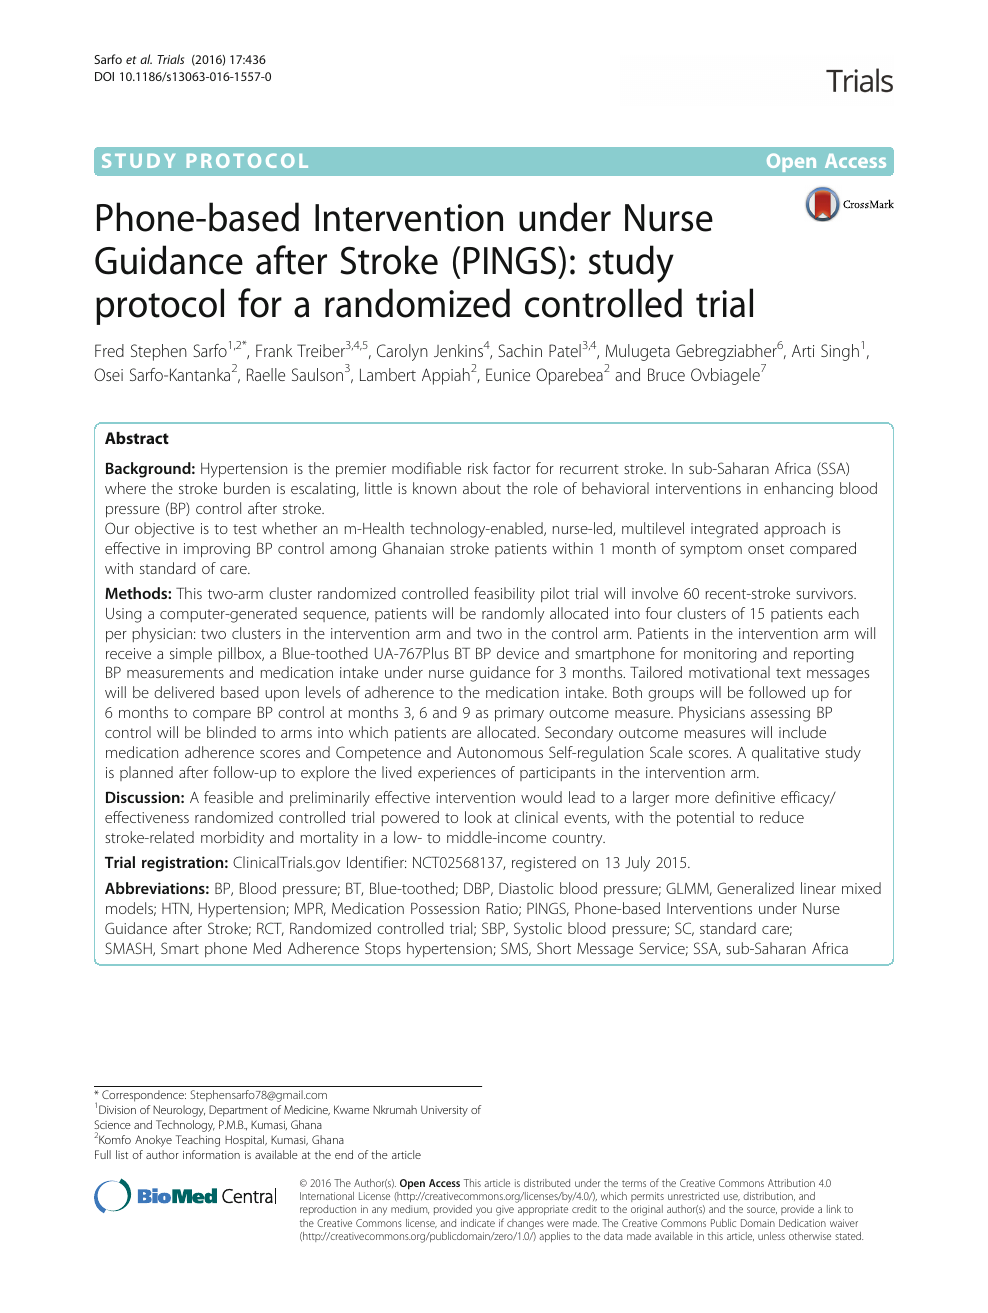 Phone-based Intervention under Nurse Guidance after Stroke